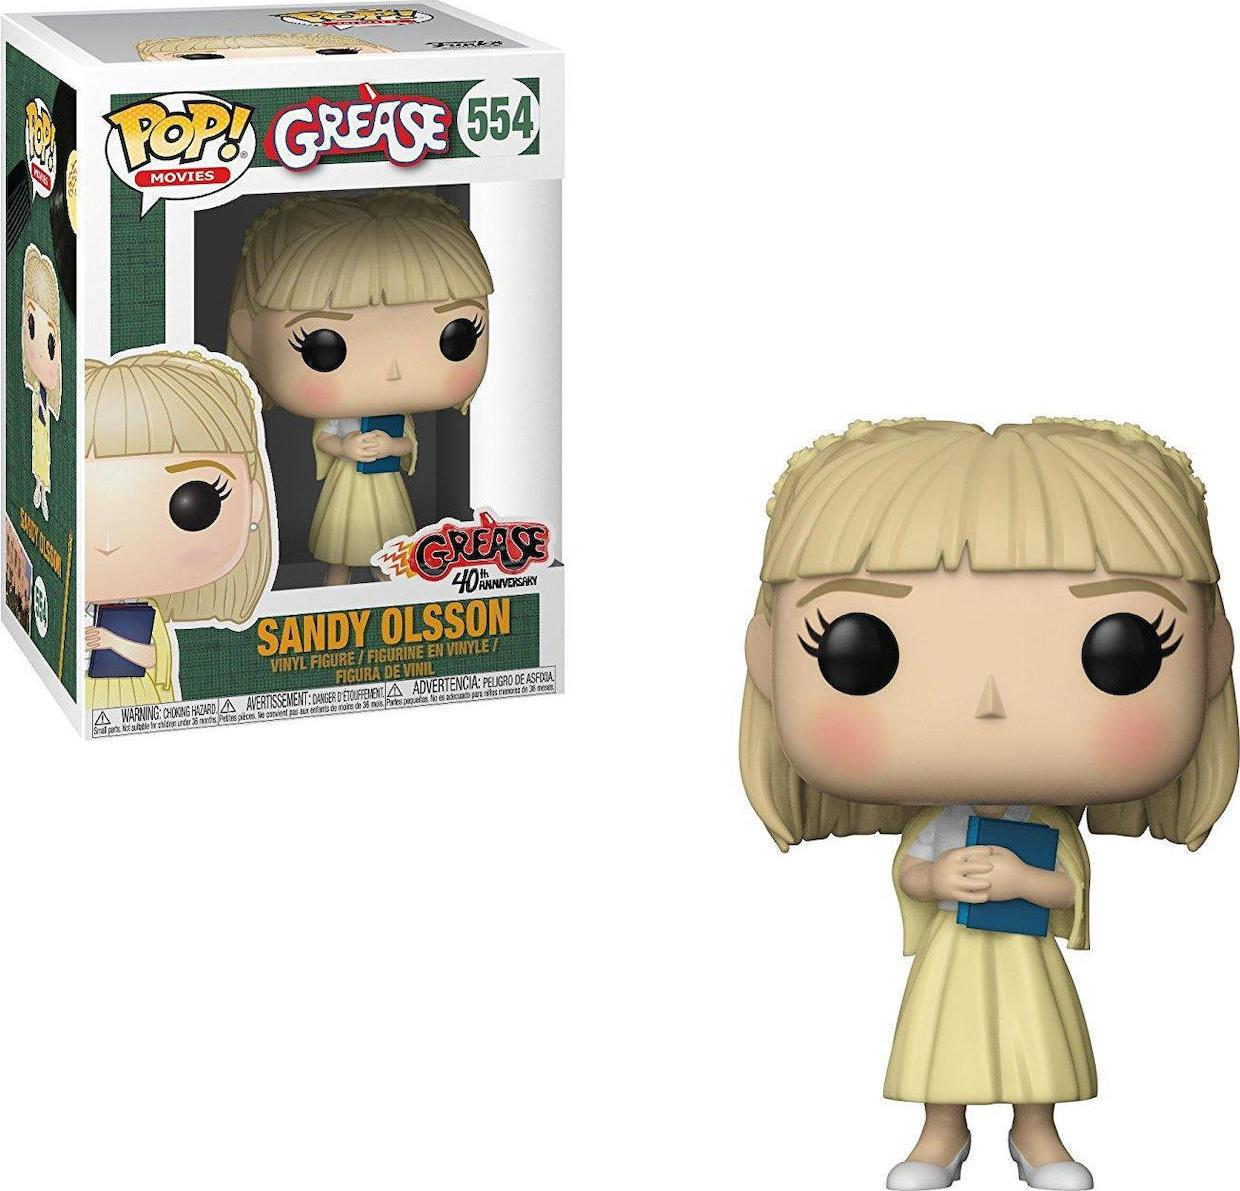 POP! Movies: Grease - Sandy Olsson (554) Vinyl Figure